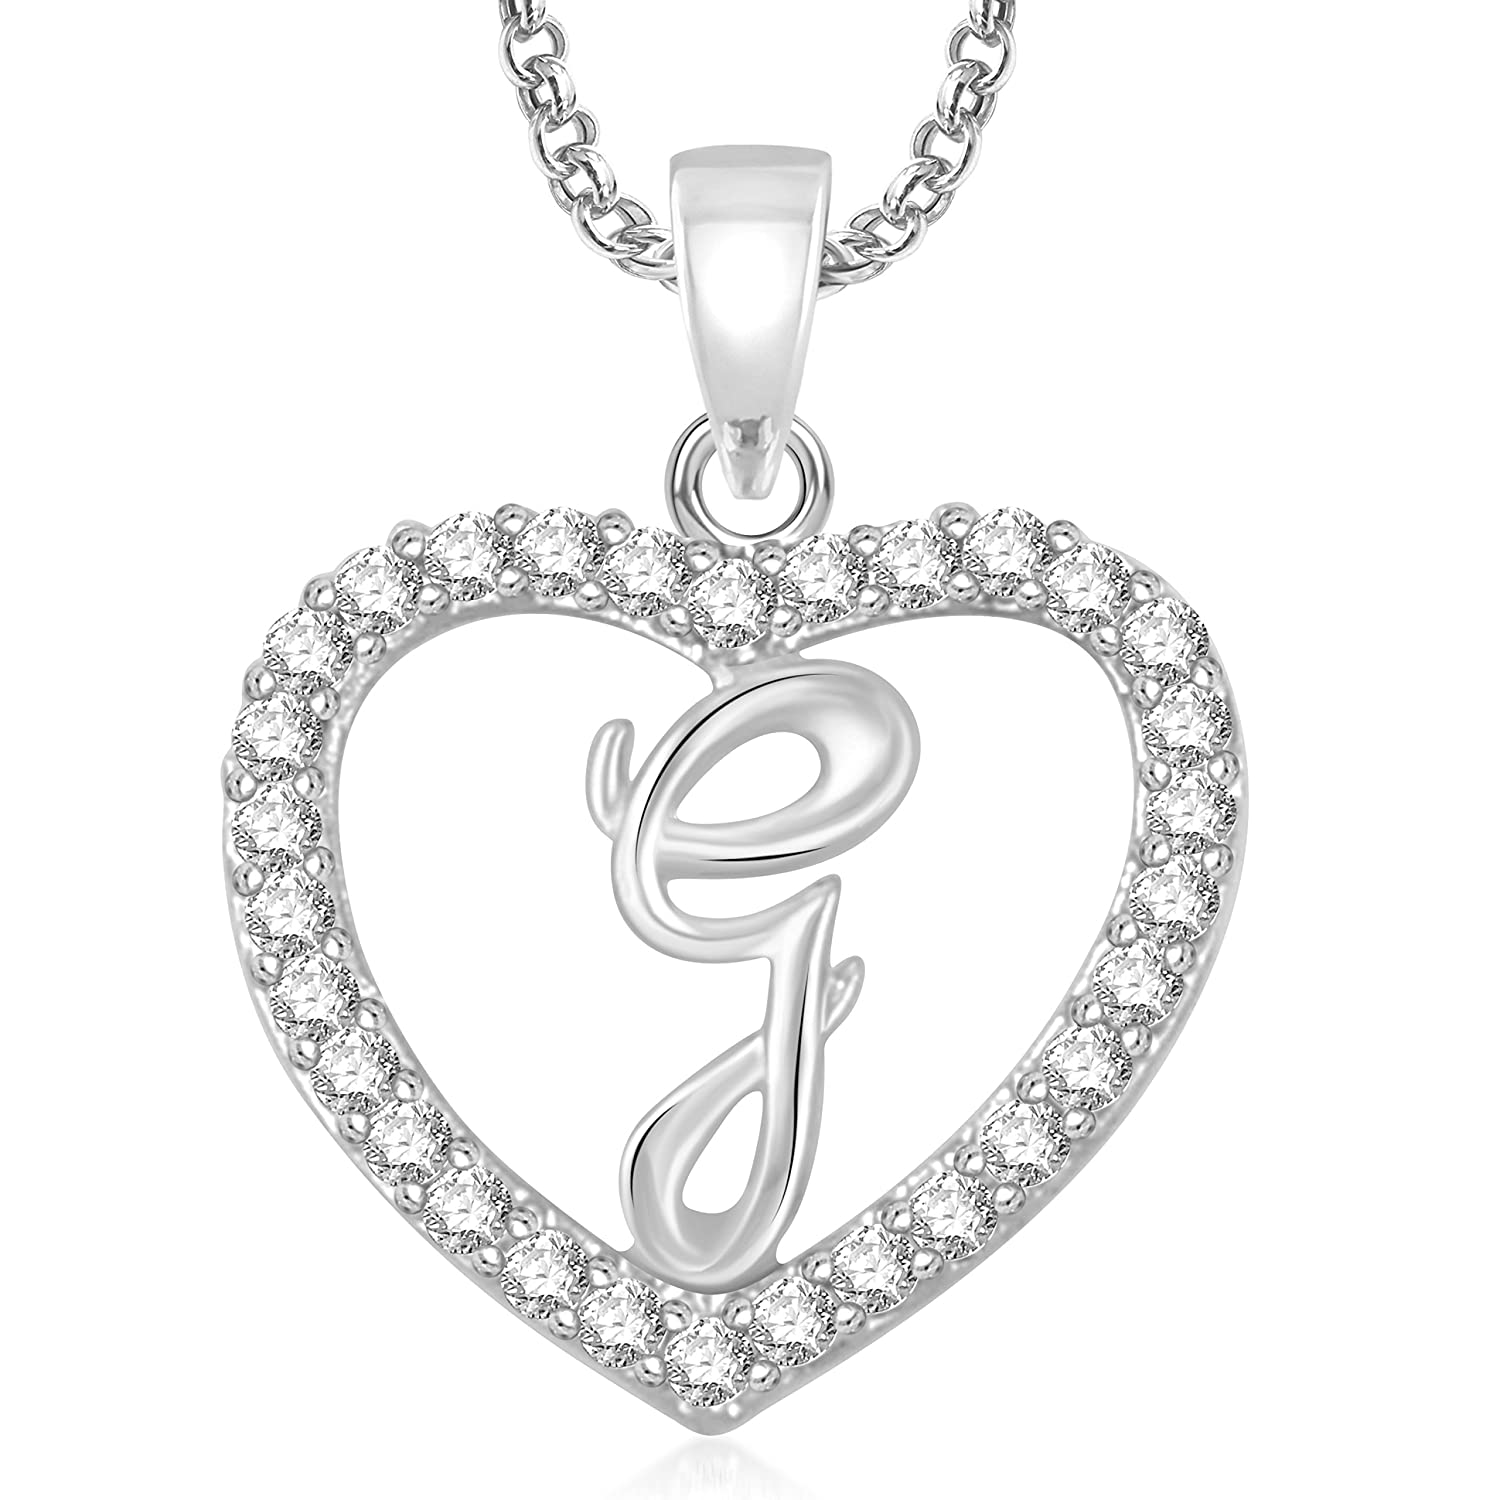 Buy meenaz silver plated g letter pendants alphabet pendant with buy meenaz silver plated g letter pendants alphabet pendant with chain for men women kids in ameriacan diamond cz jewellery online at low prices in aloadofball Images